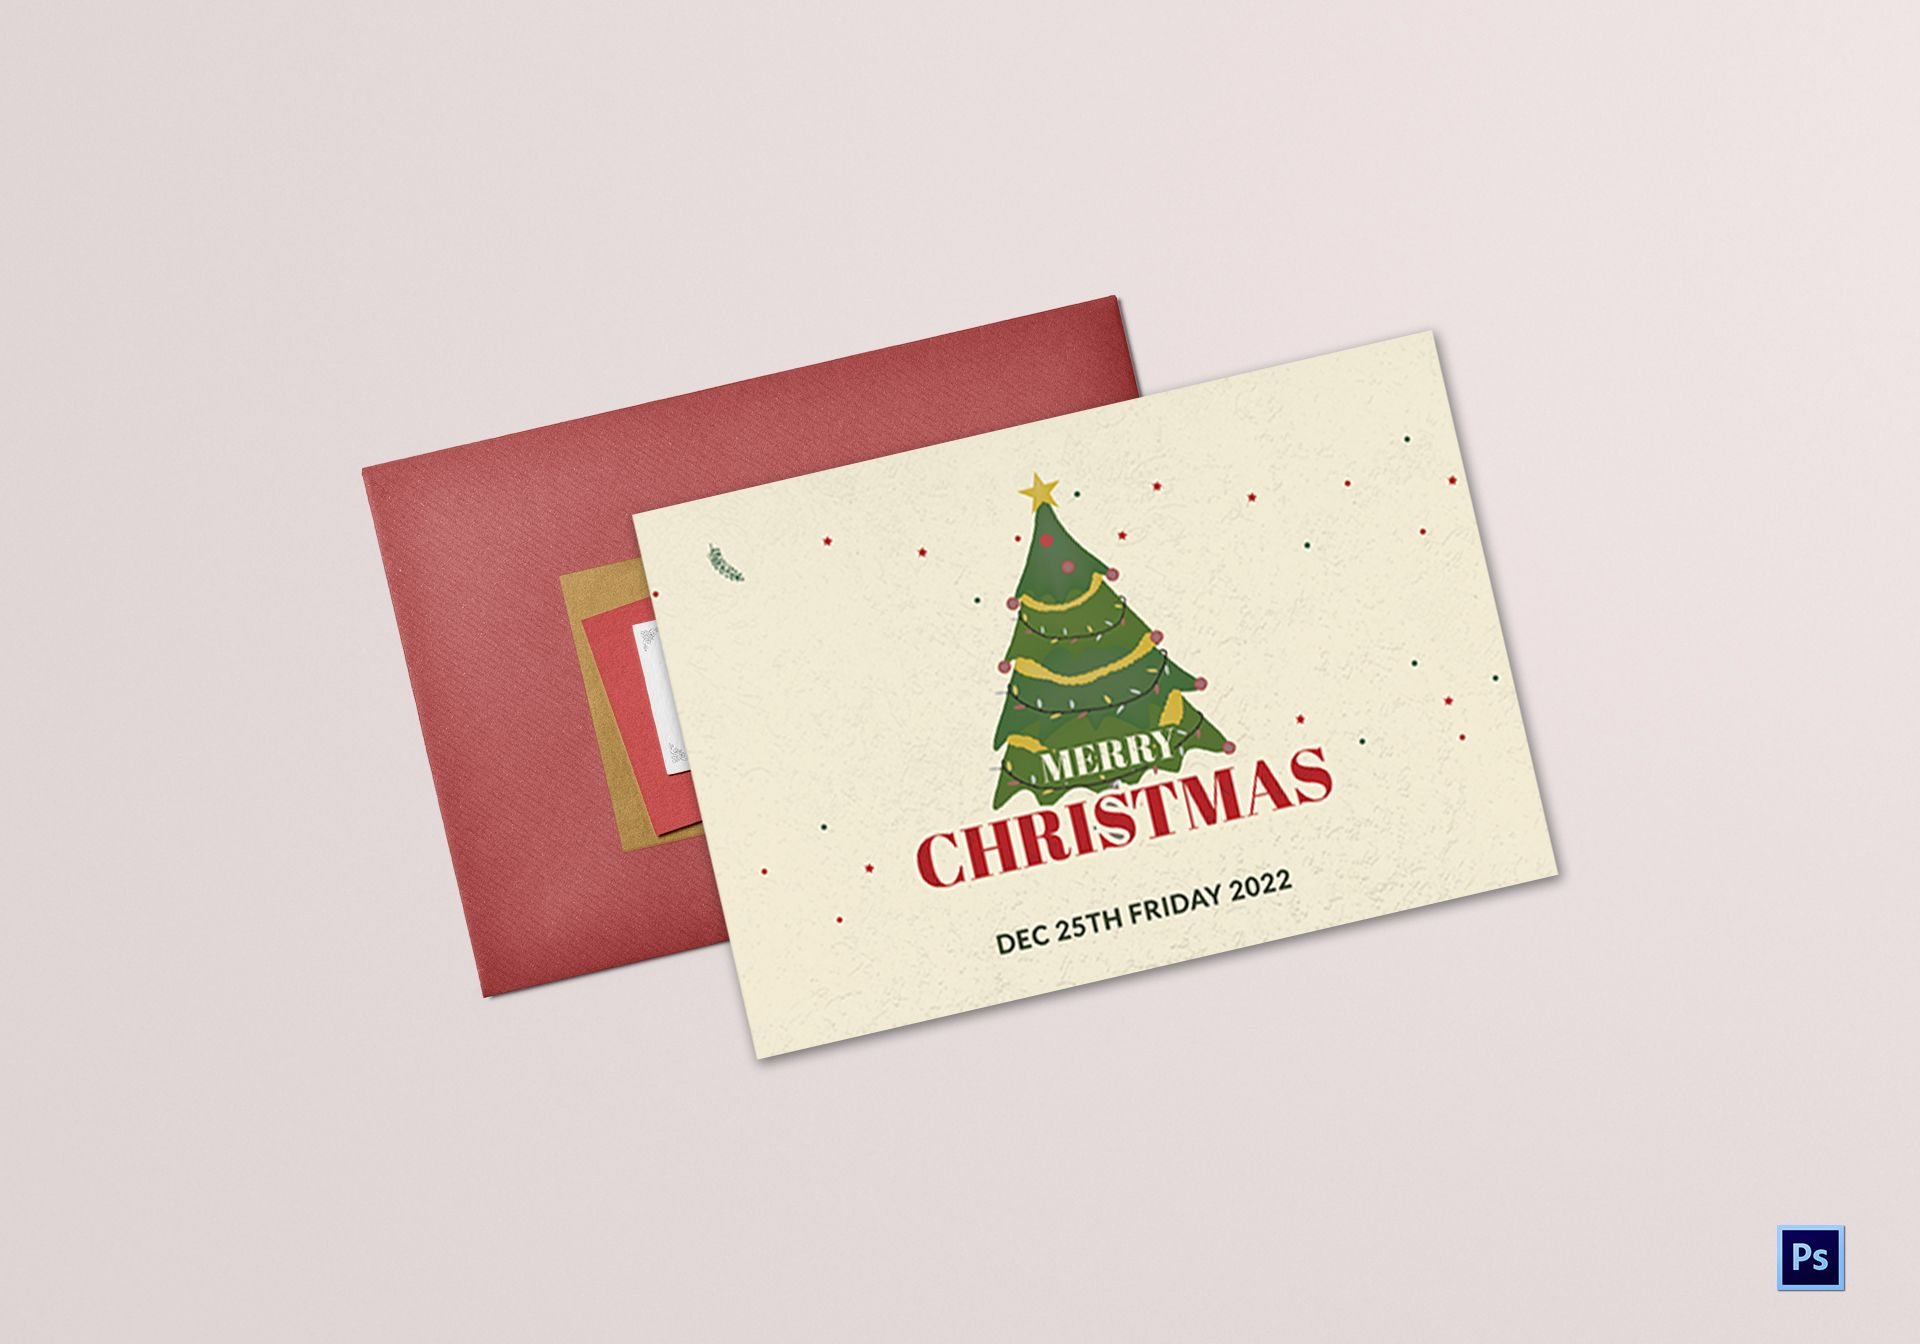 Christmas Wishes Greeting Card Template In Adobe Photoshop